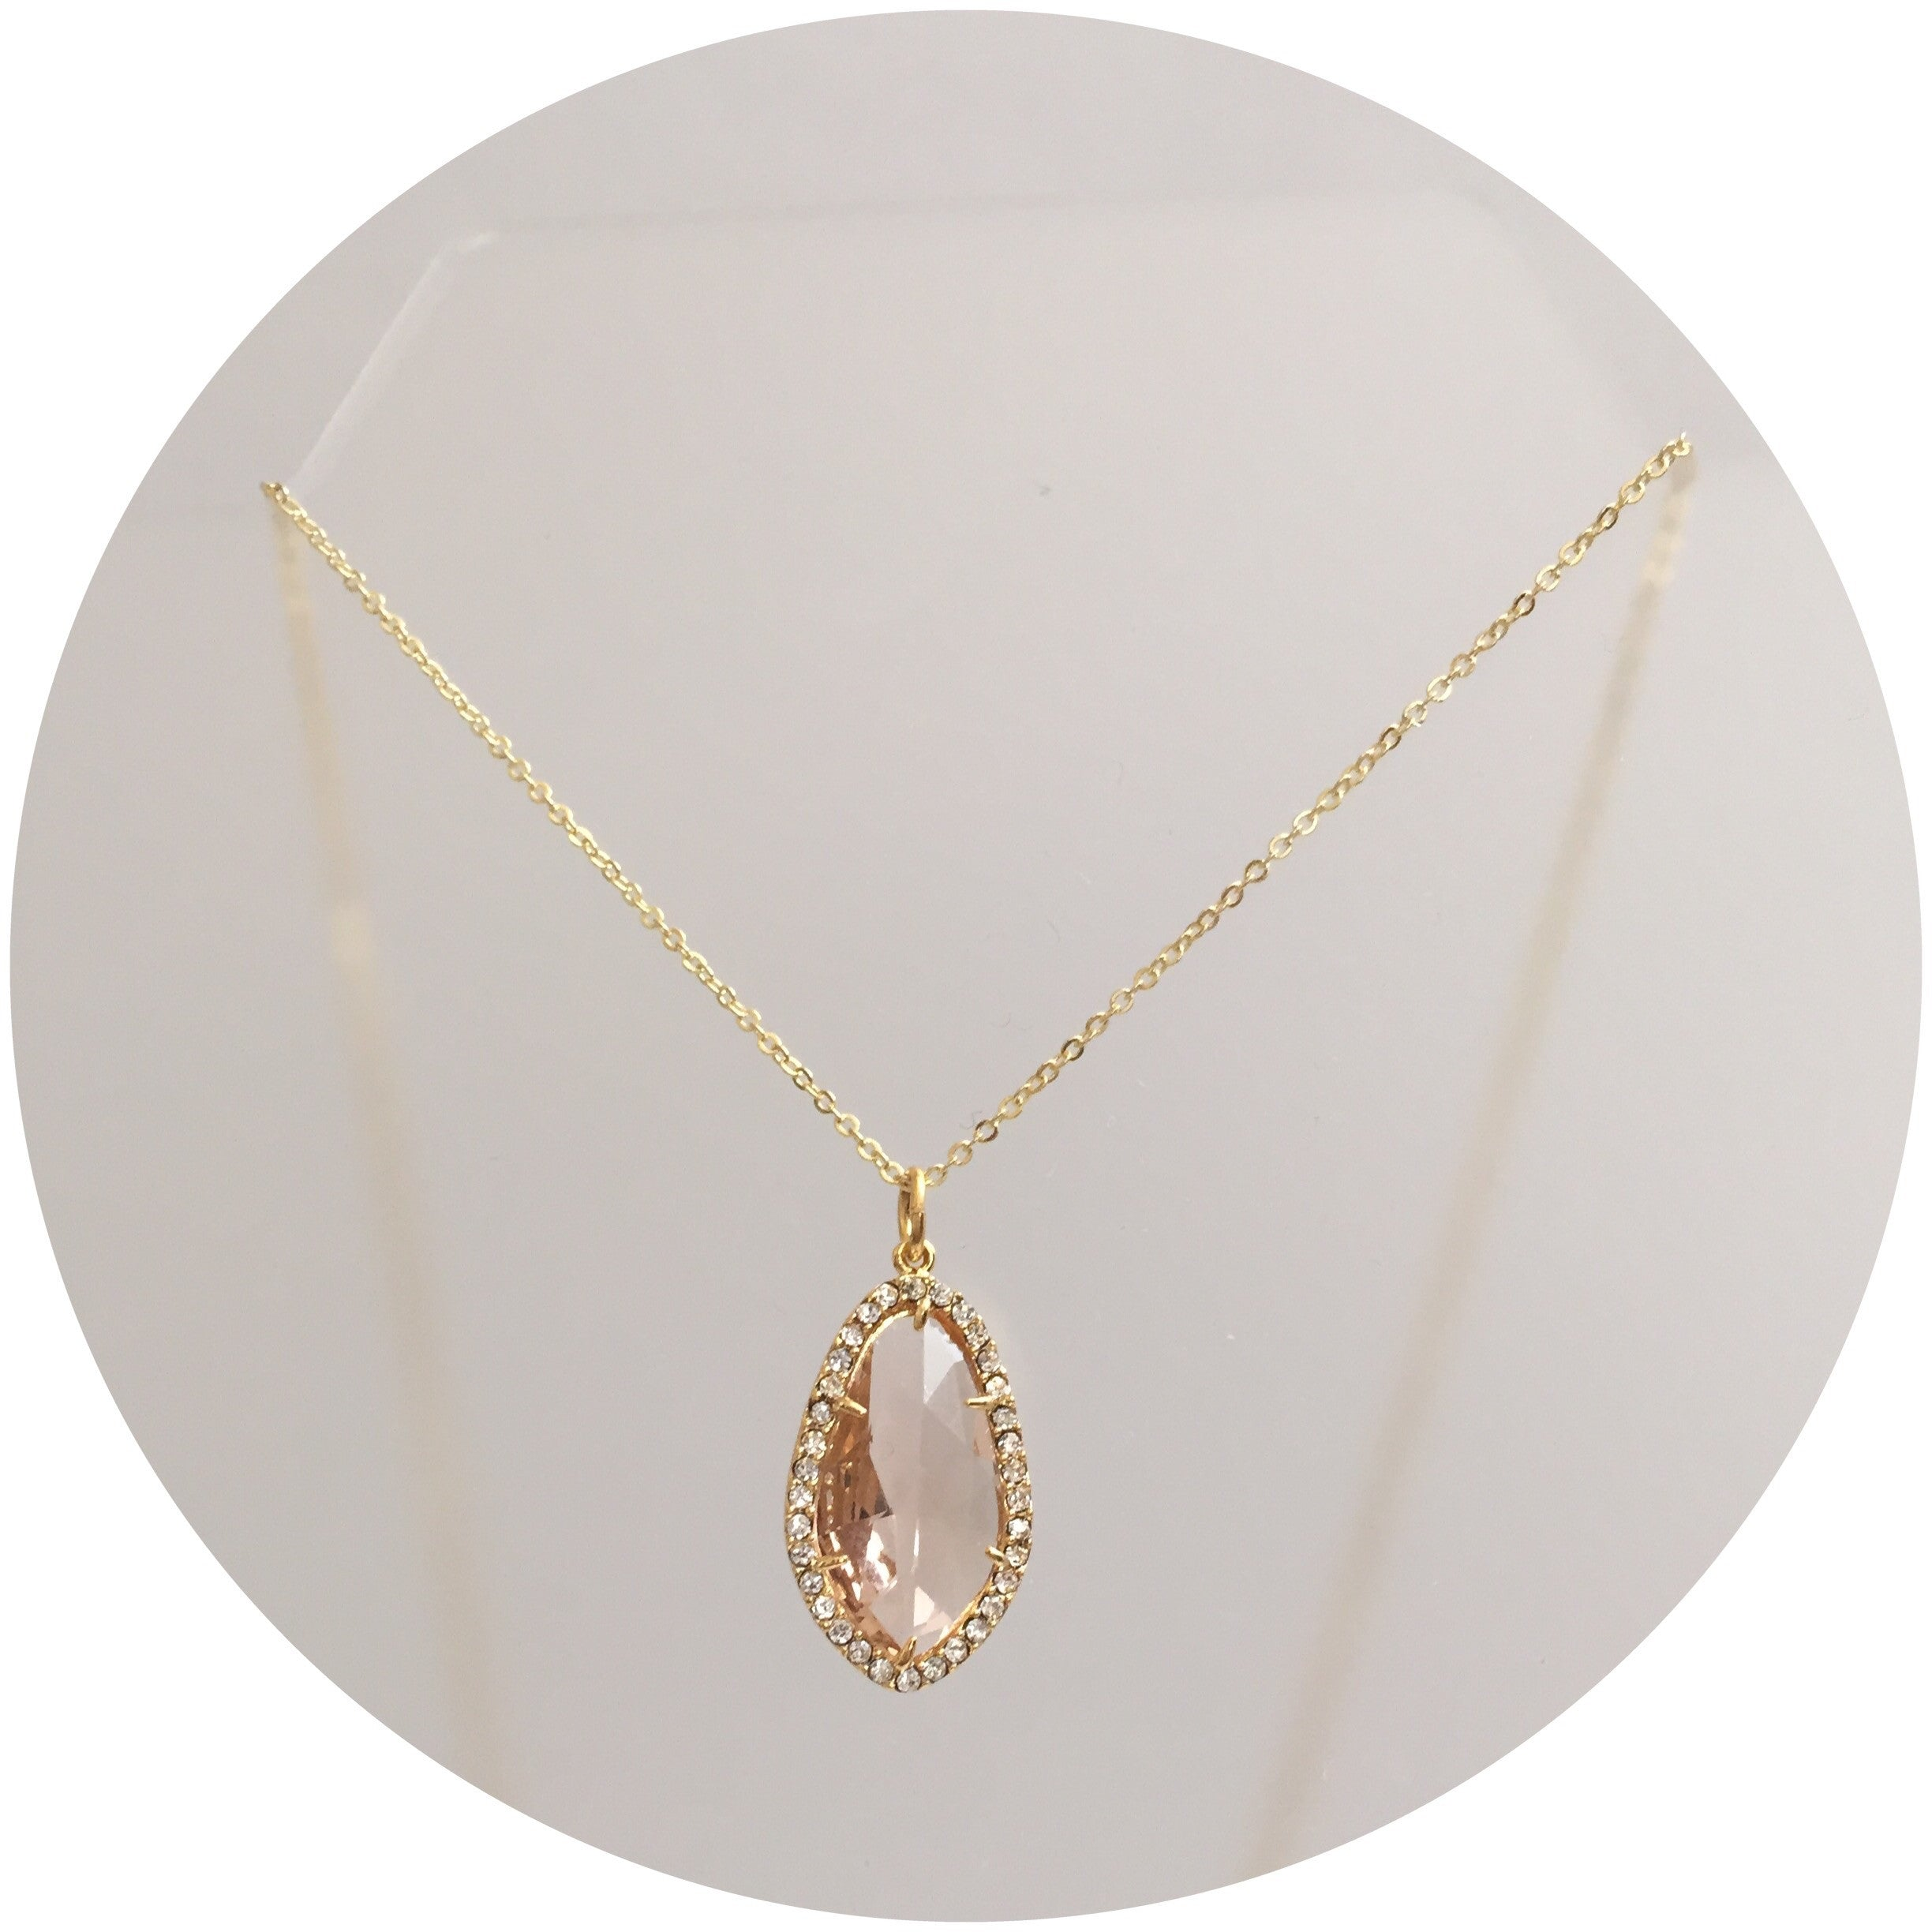 Pavé Peach Glass Necklace - Oriana Lamarca LLC